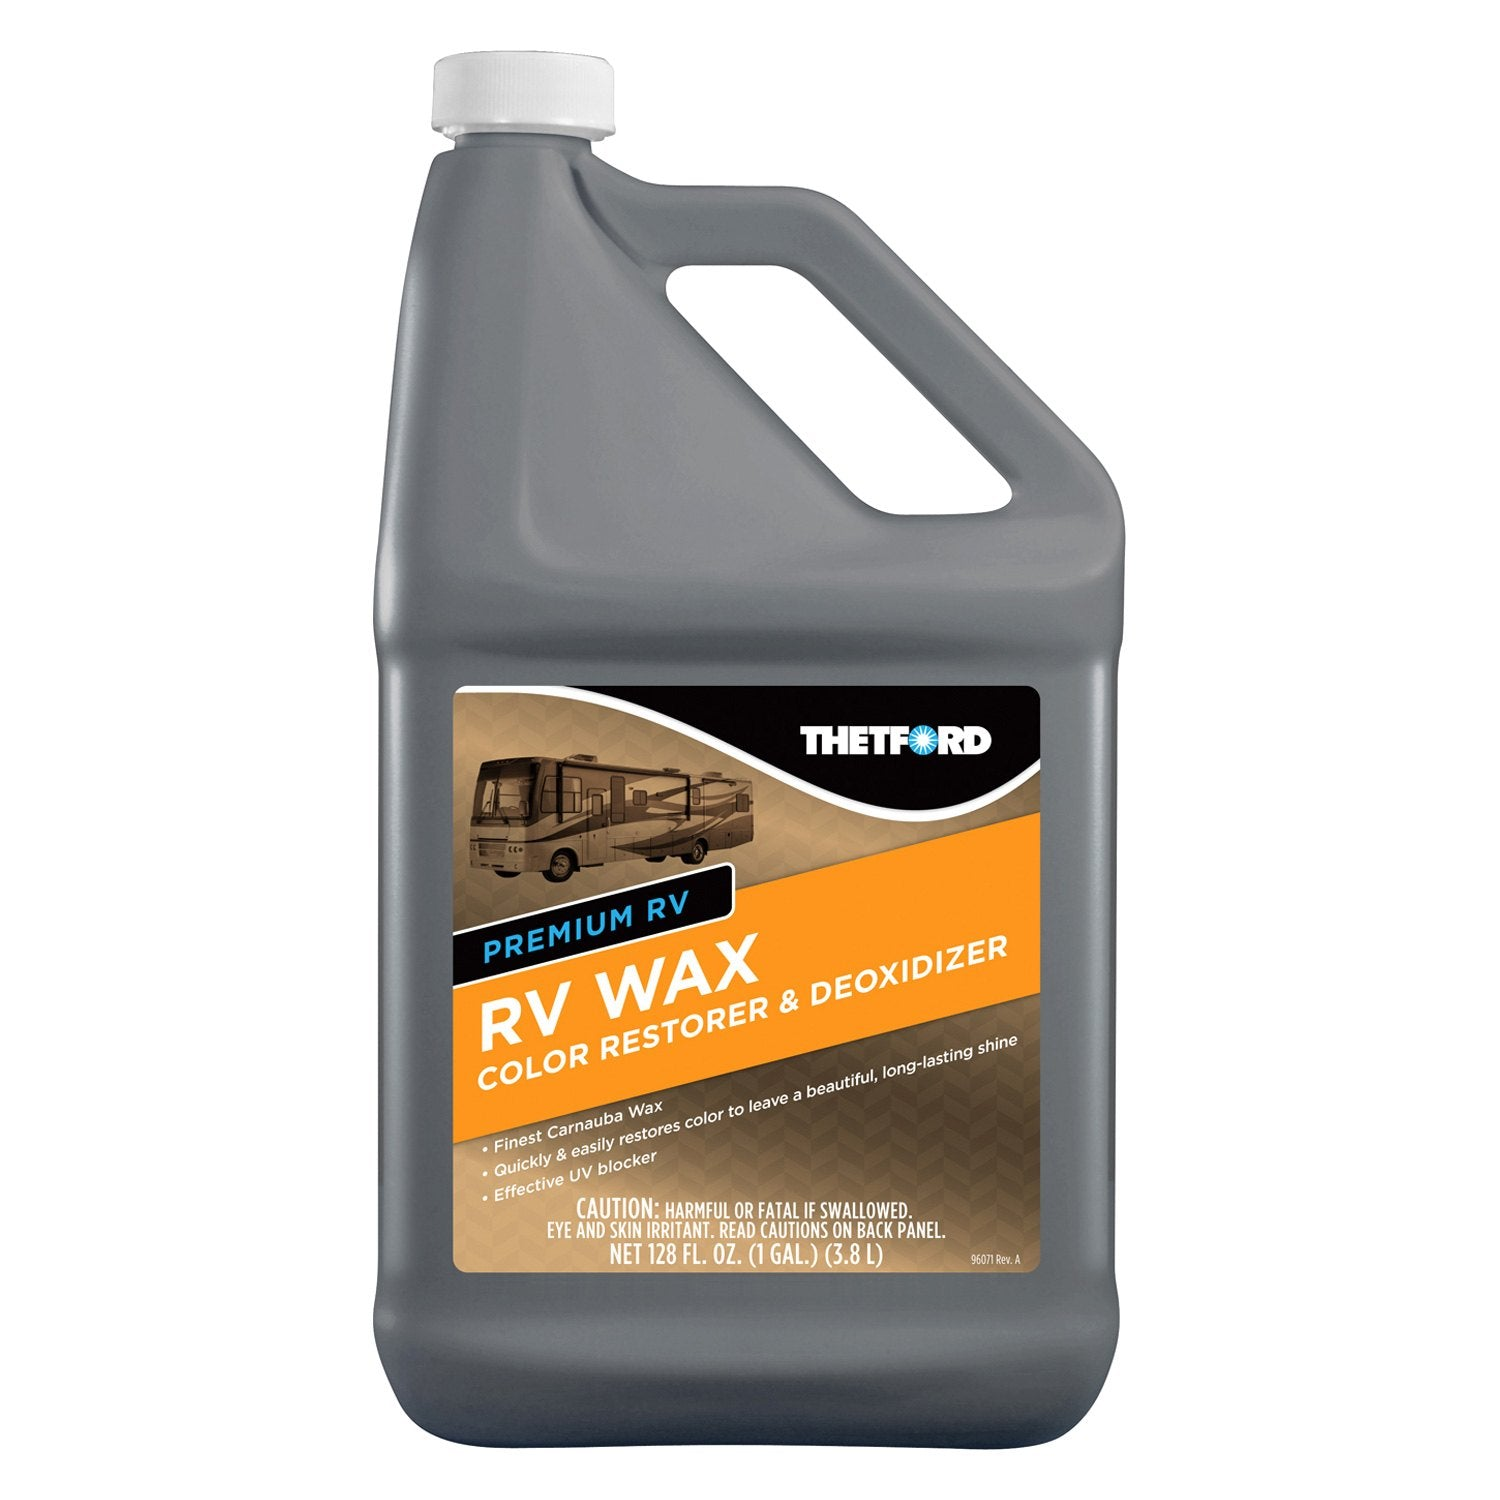 Thetford Premium RV Wax - The RV Parts House